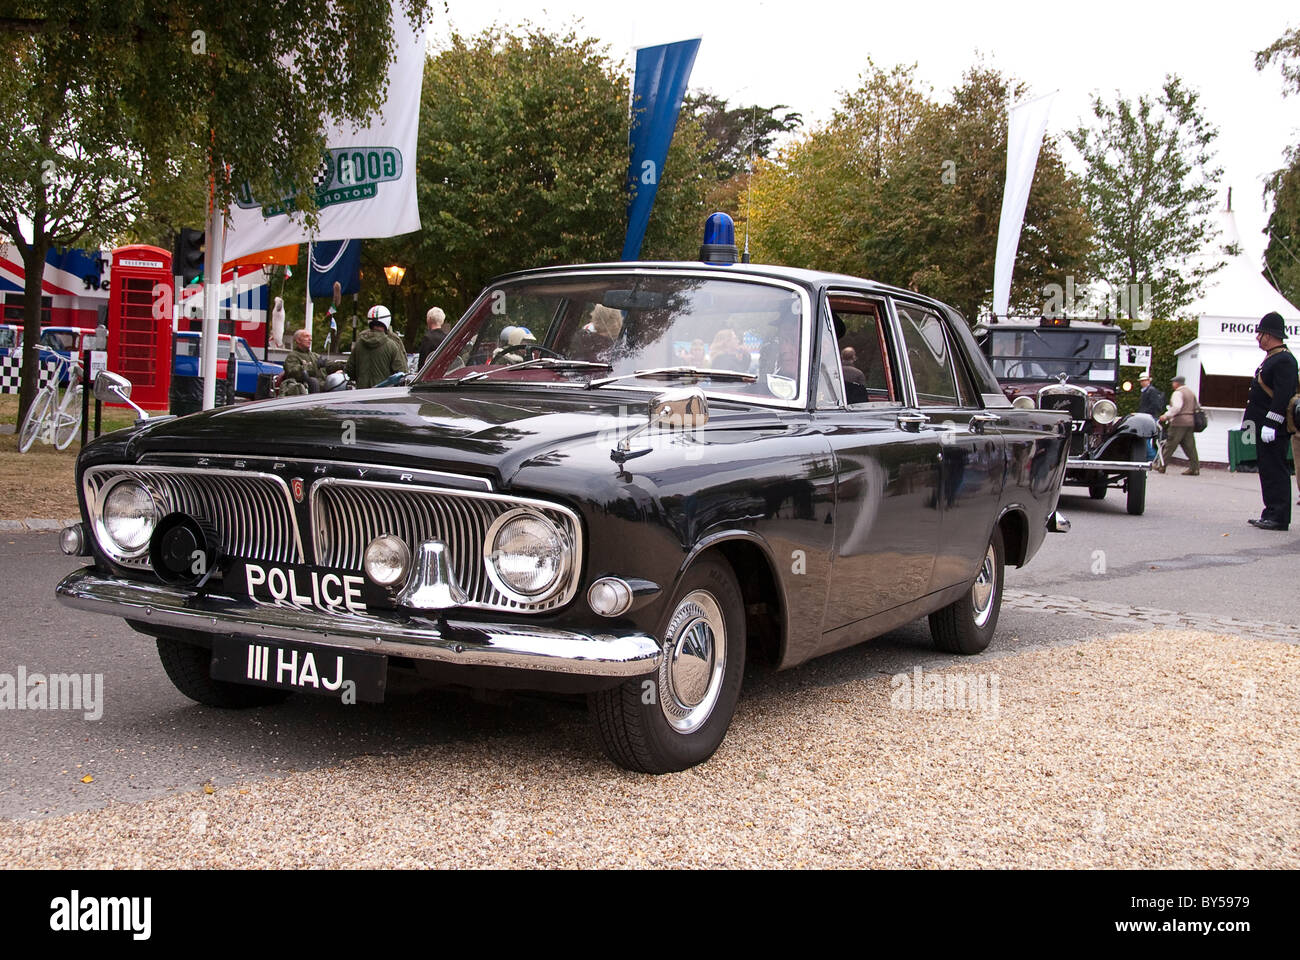 Ford Zephyr Stock Photos Images Alamy 1970 Police Car Image